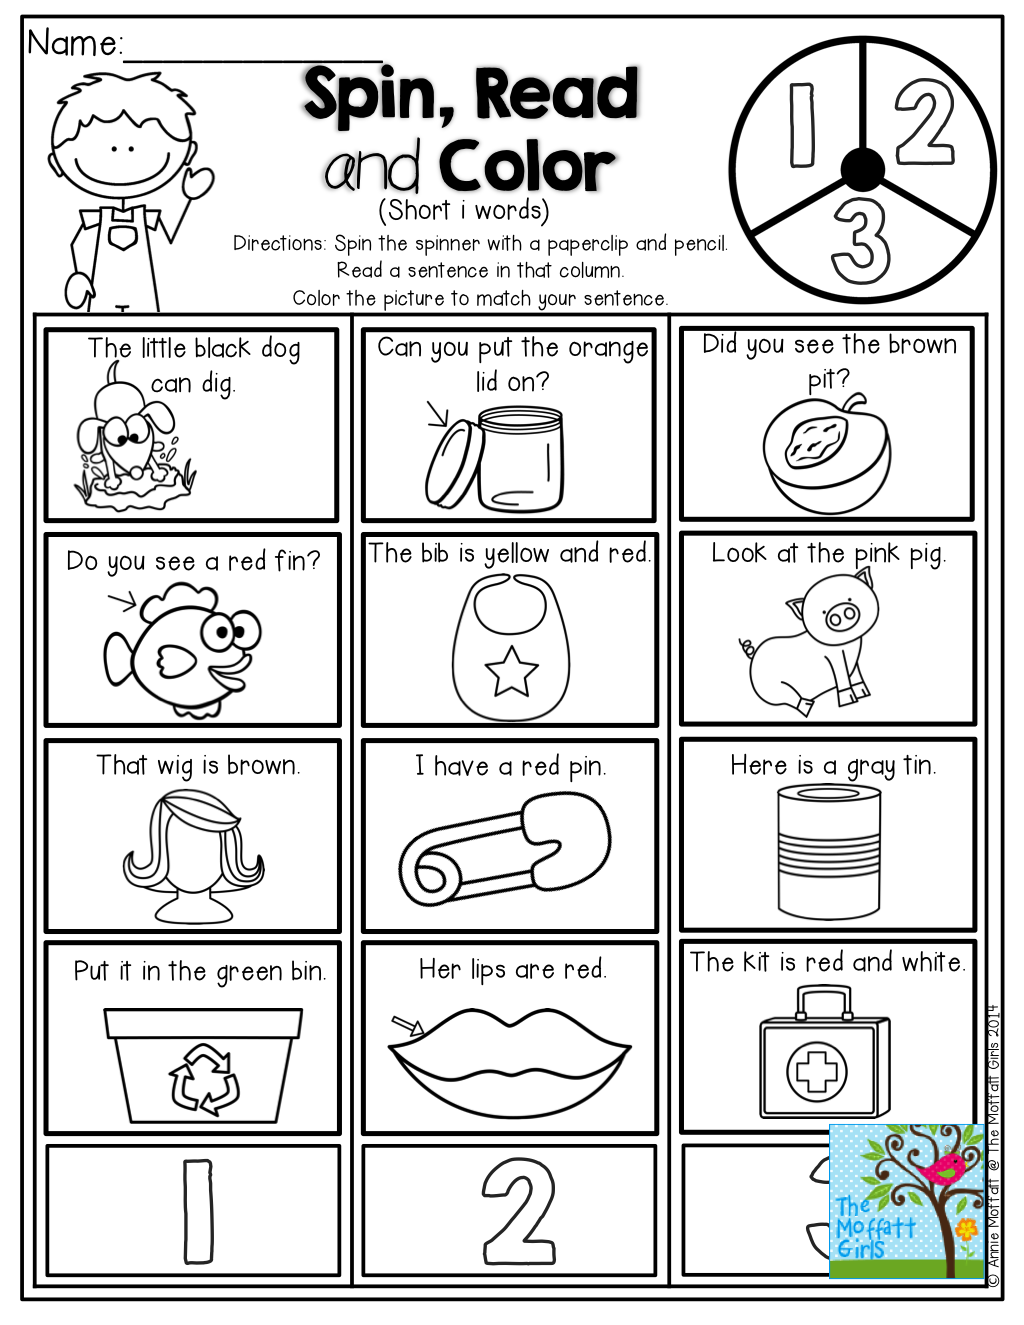 Spin The Spinner Read The Sentence And Color The Picture To Match Reading Classroom Kindergarten Reading First Grade Reading [ 1325 x 1024 Pixel ]